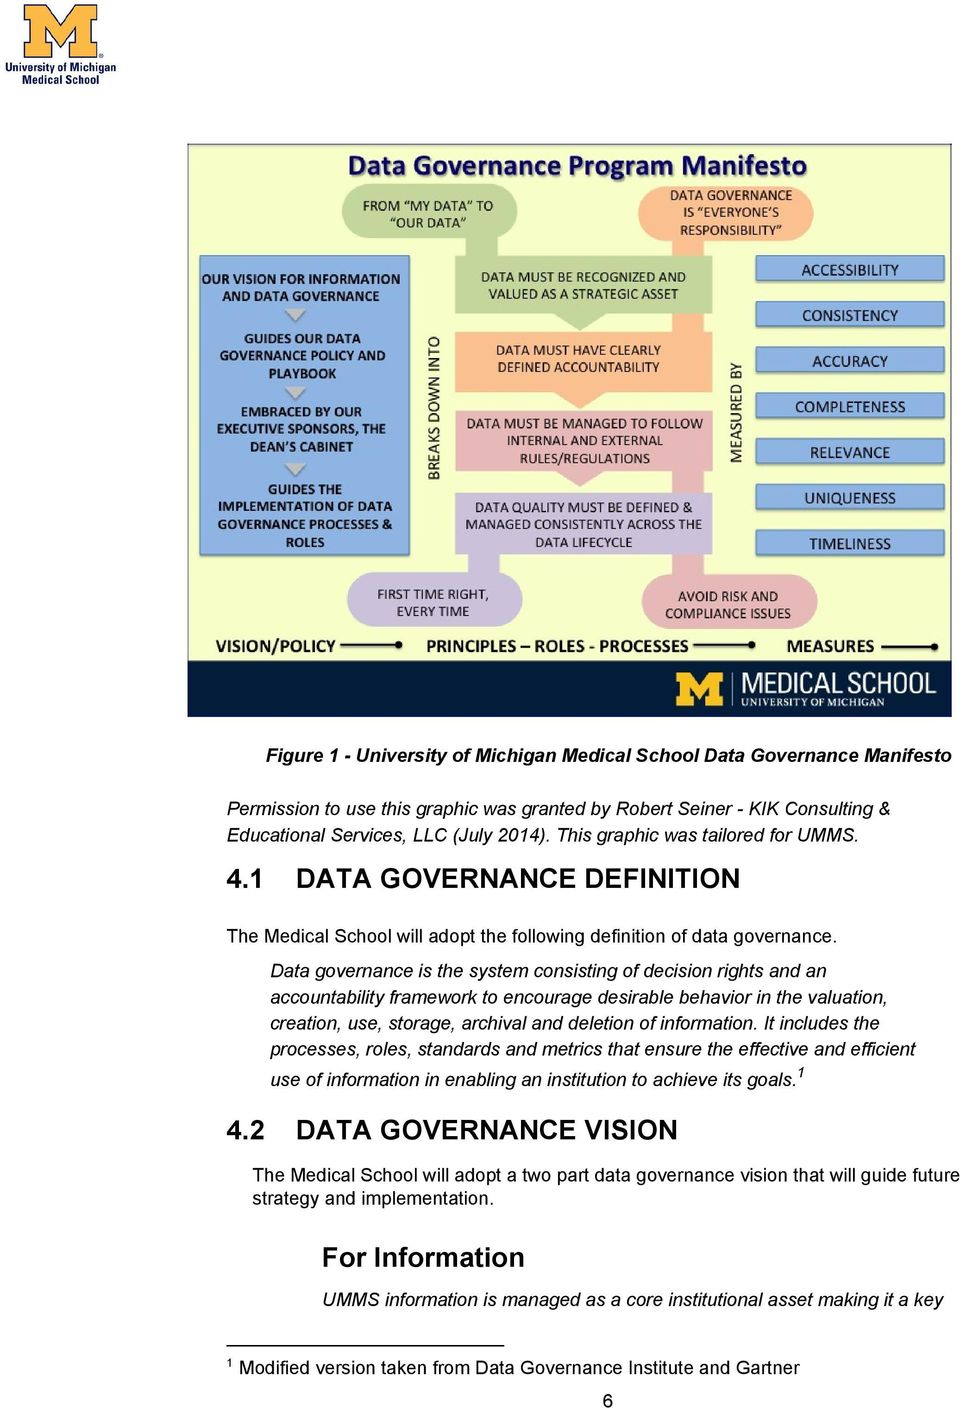 Data governance is the system consisting of decision rights and an accountability framework to encourage desirable behavior in the valuation, creation, use, storage, archival and deletion of